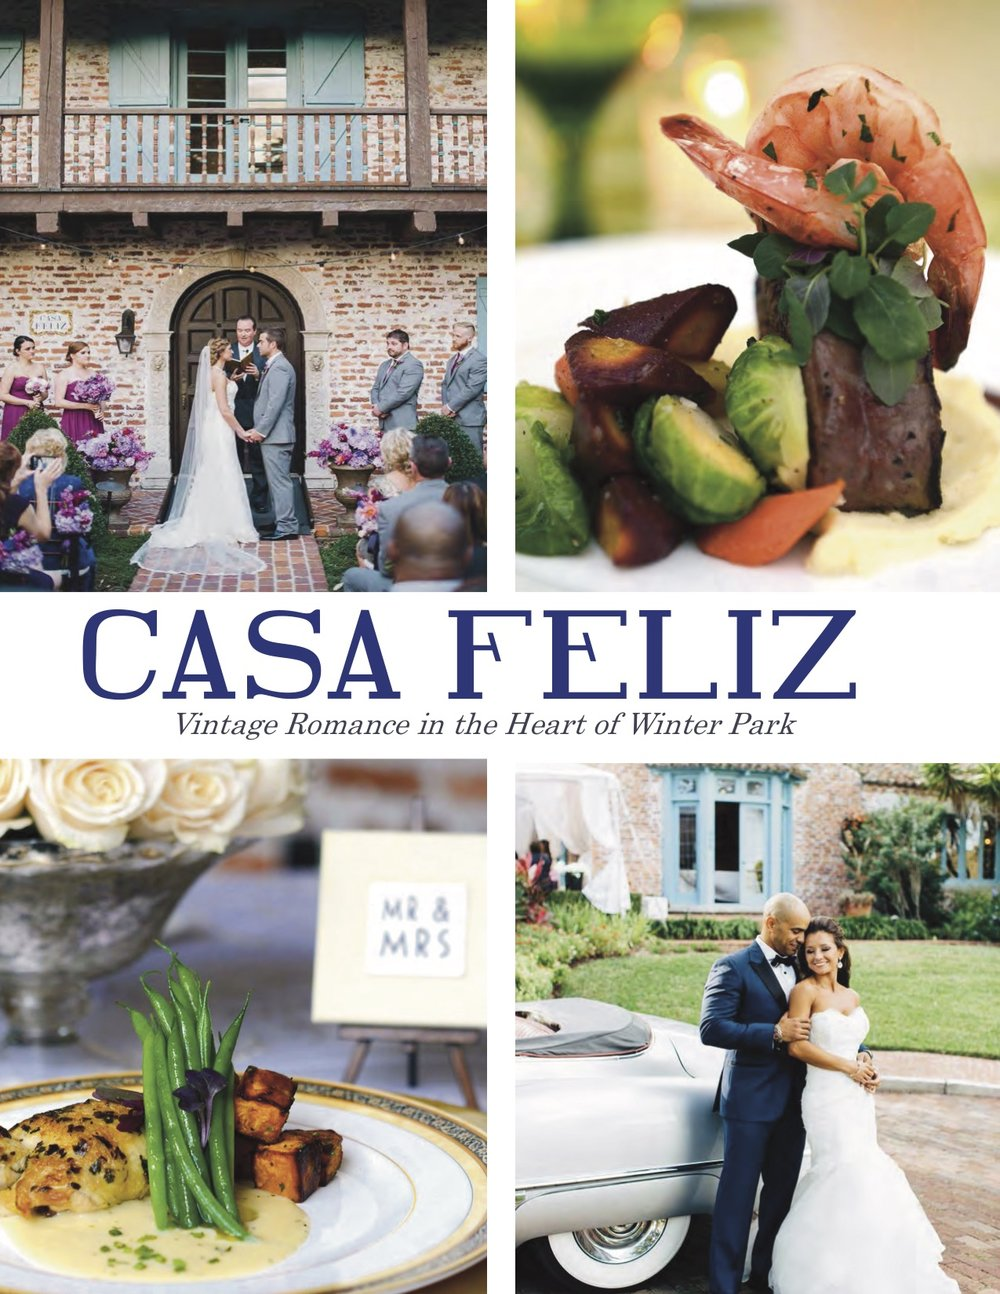 Arthur's Catering Packages for Casa Feliz 5 8 17 copy.jpg